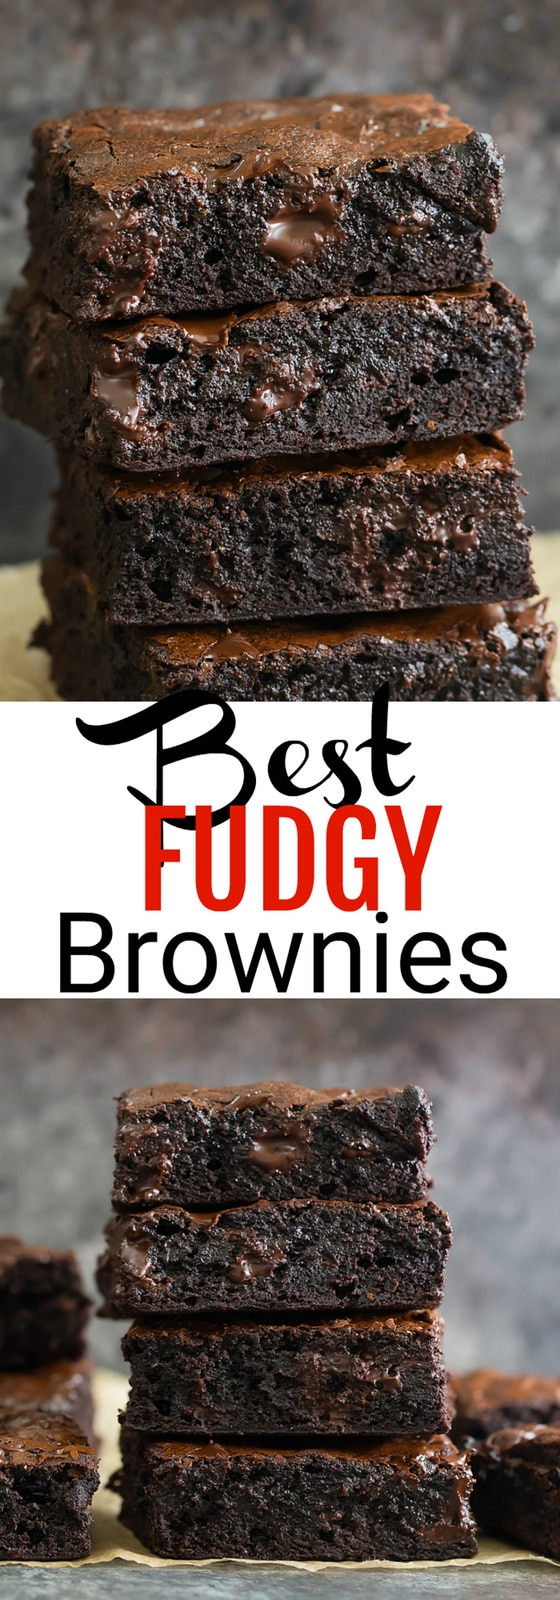 Best Fudgy Brownies. These brownies are ultra fudgy, chewy and have a shiny crackly top. I'm also sharing tips and tricks for making brownie variations, cutting brownies and achieving that shiny top.